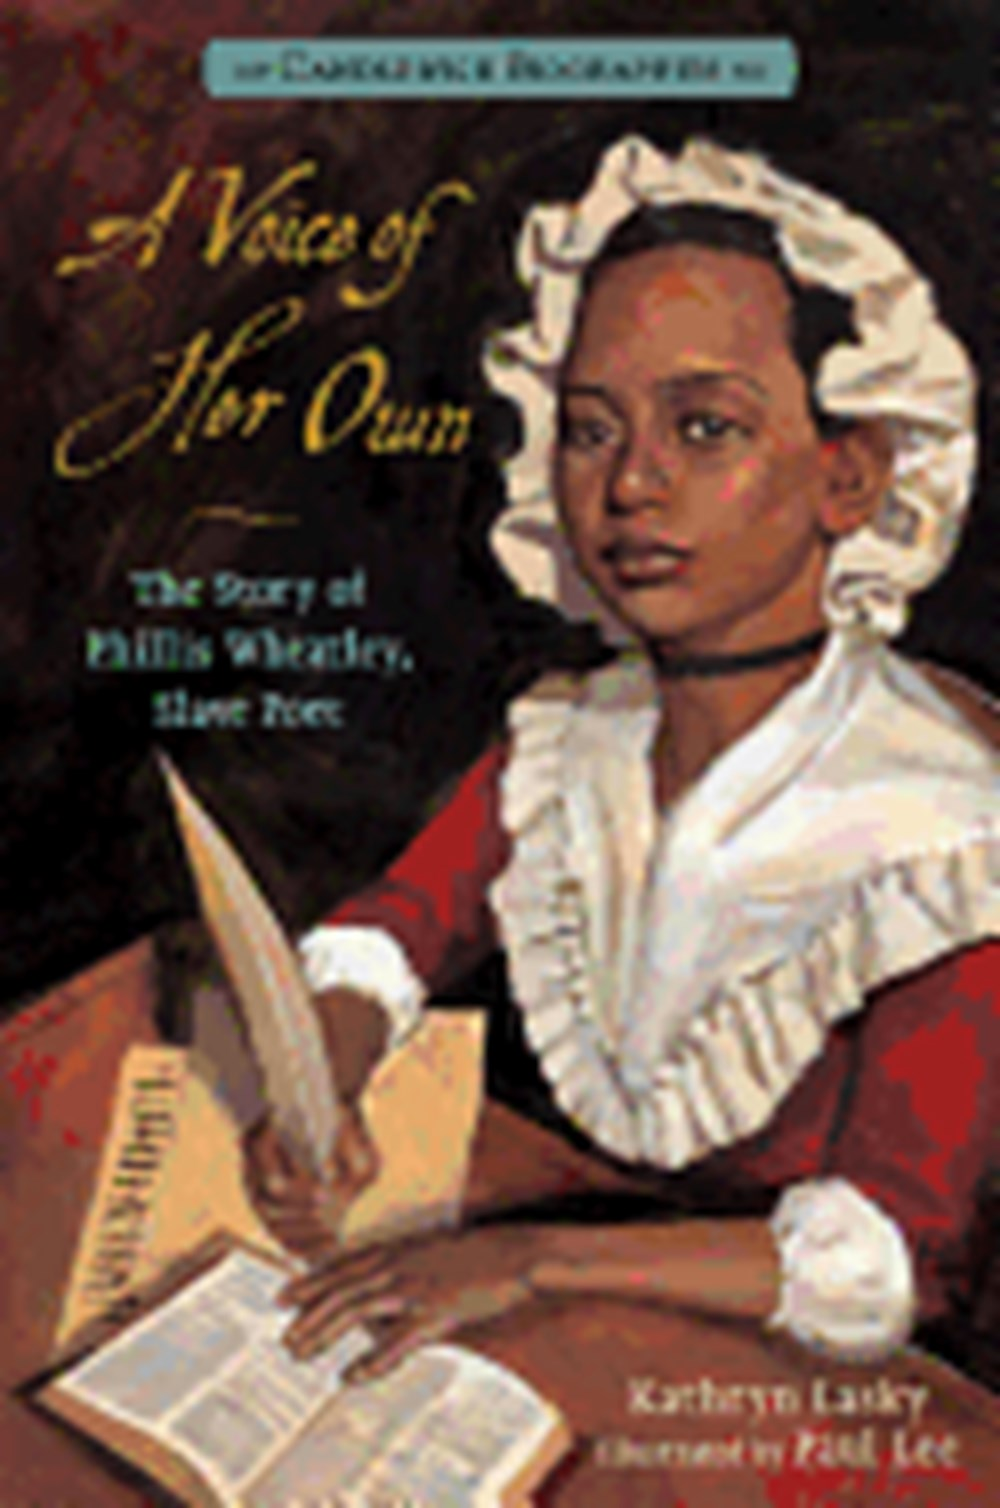 Voice of Her Own The Story of Phillis Wheatley, Slave Poet